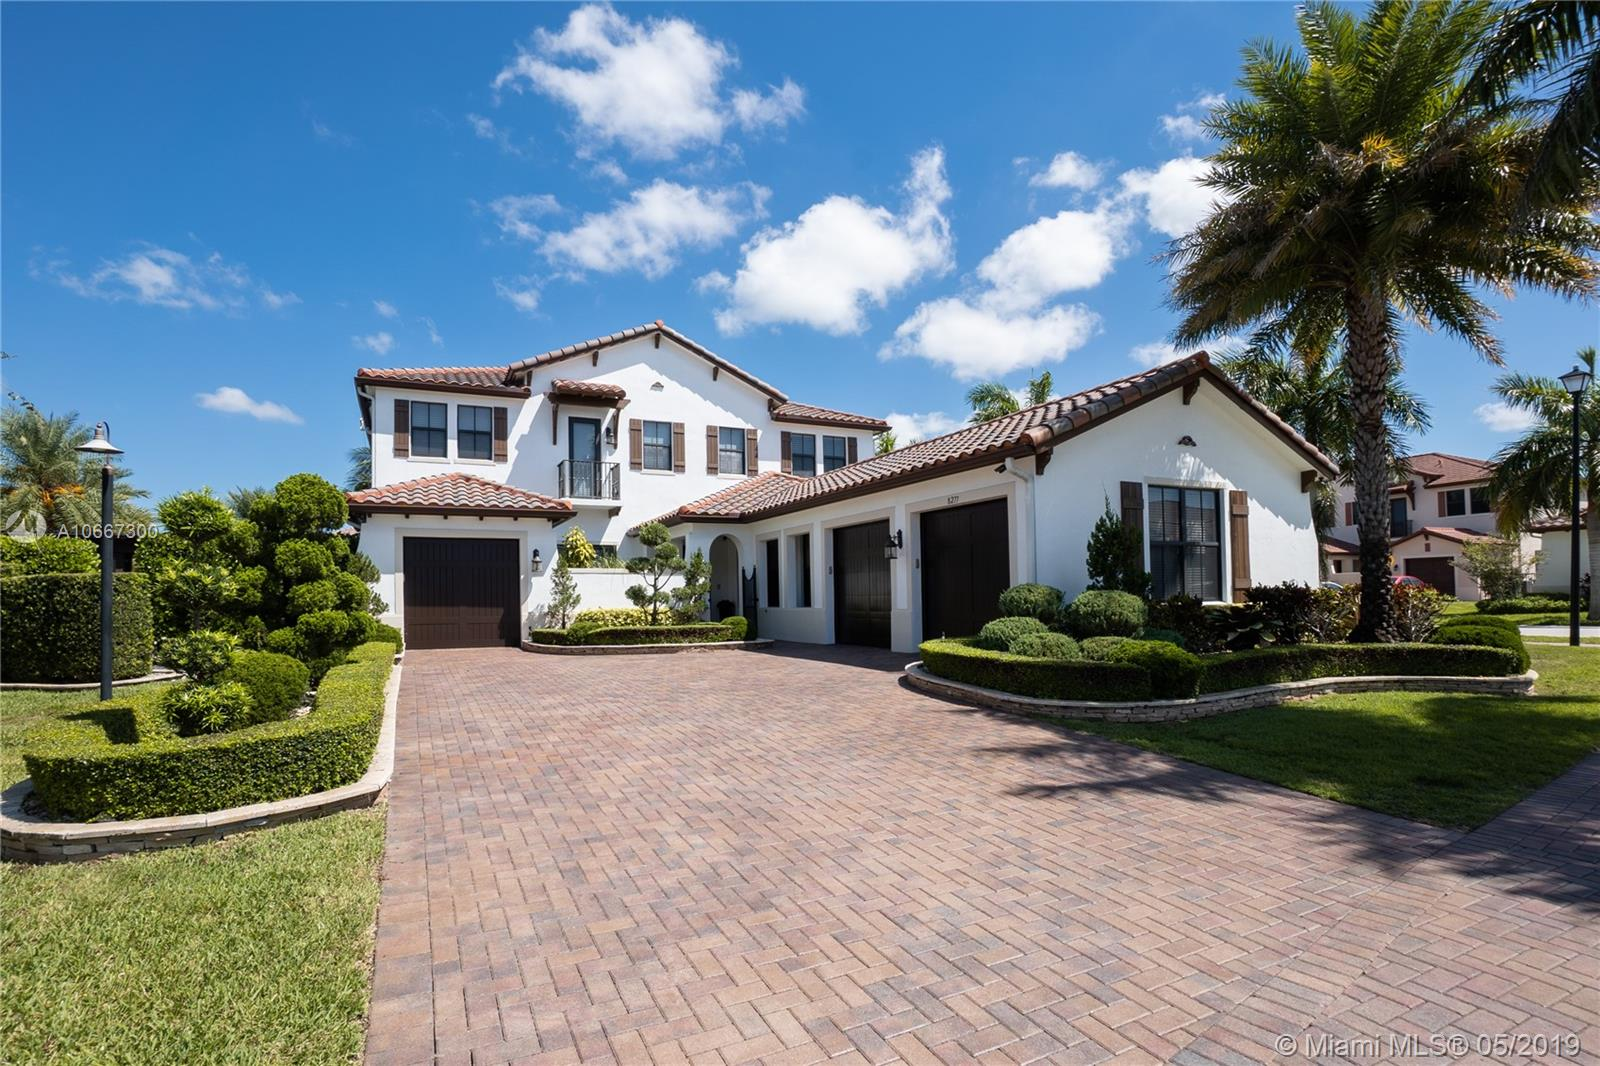 8277 NW 30th St, one of homes for sale in Cooper City